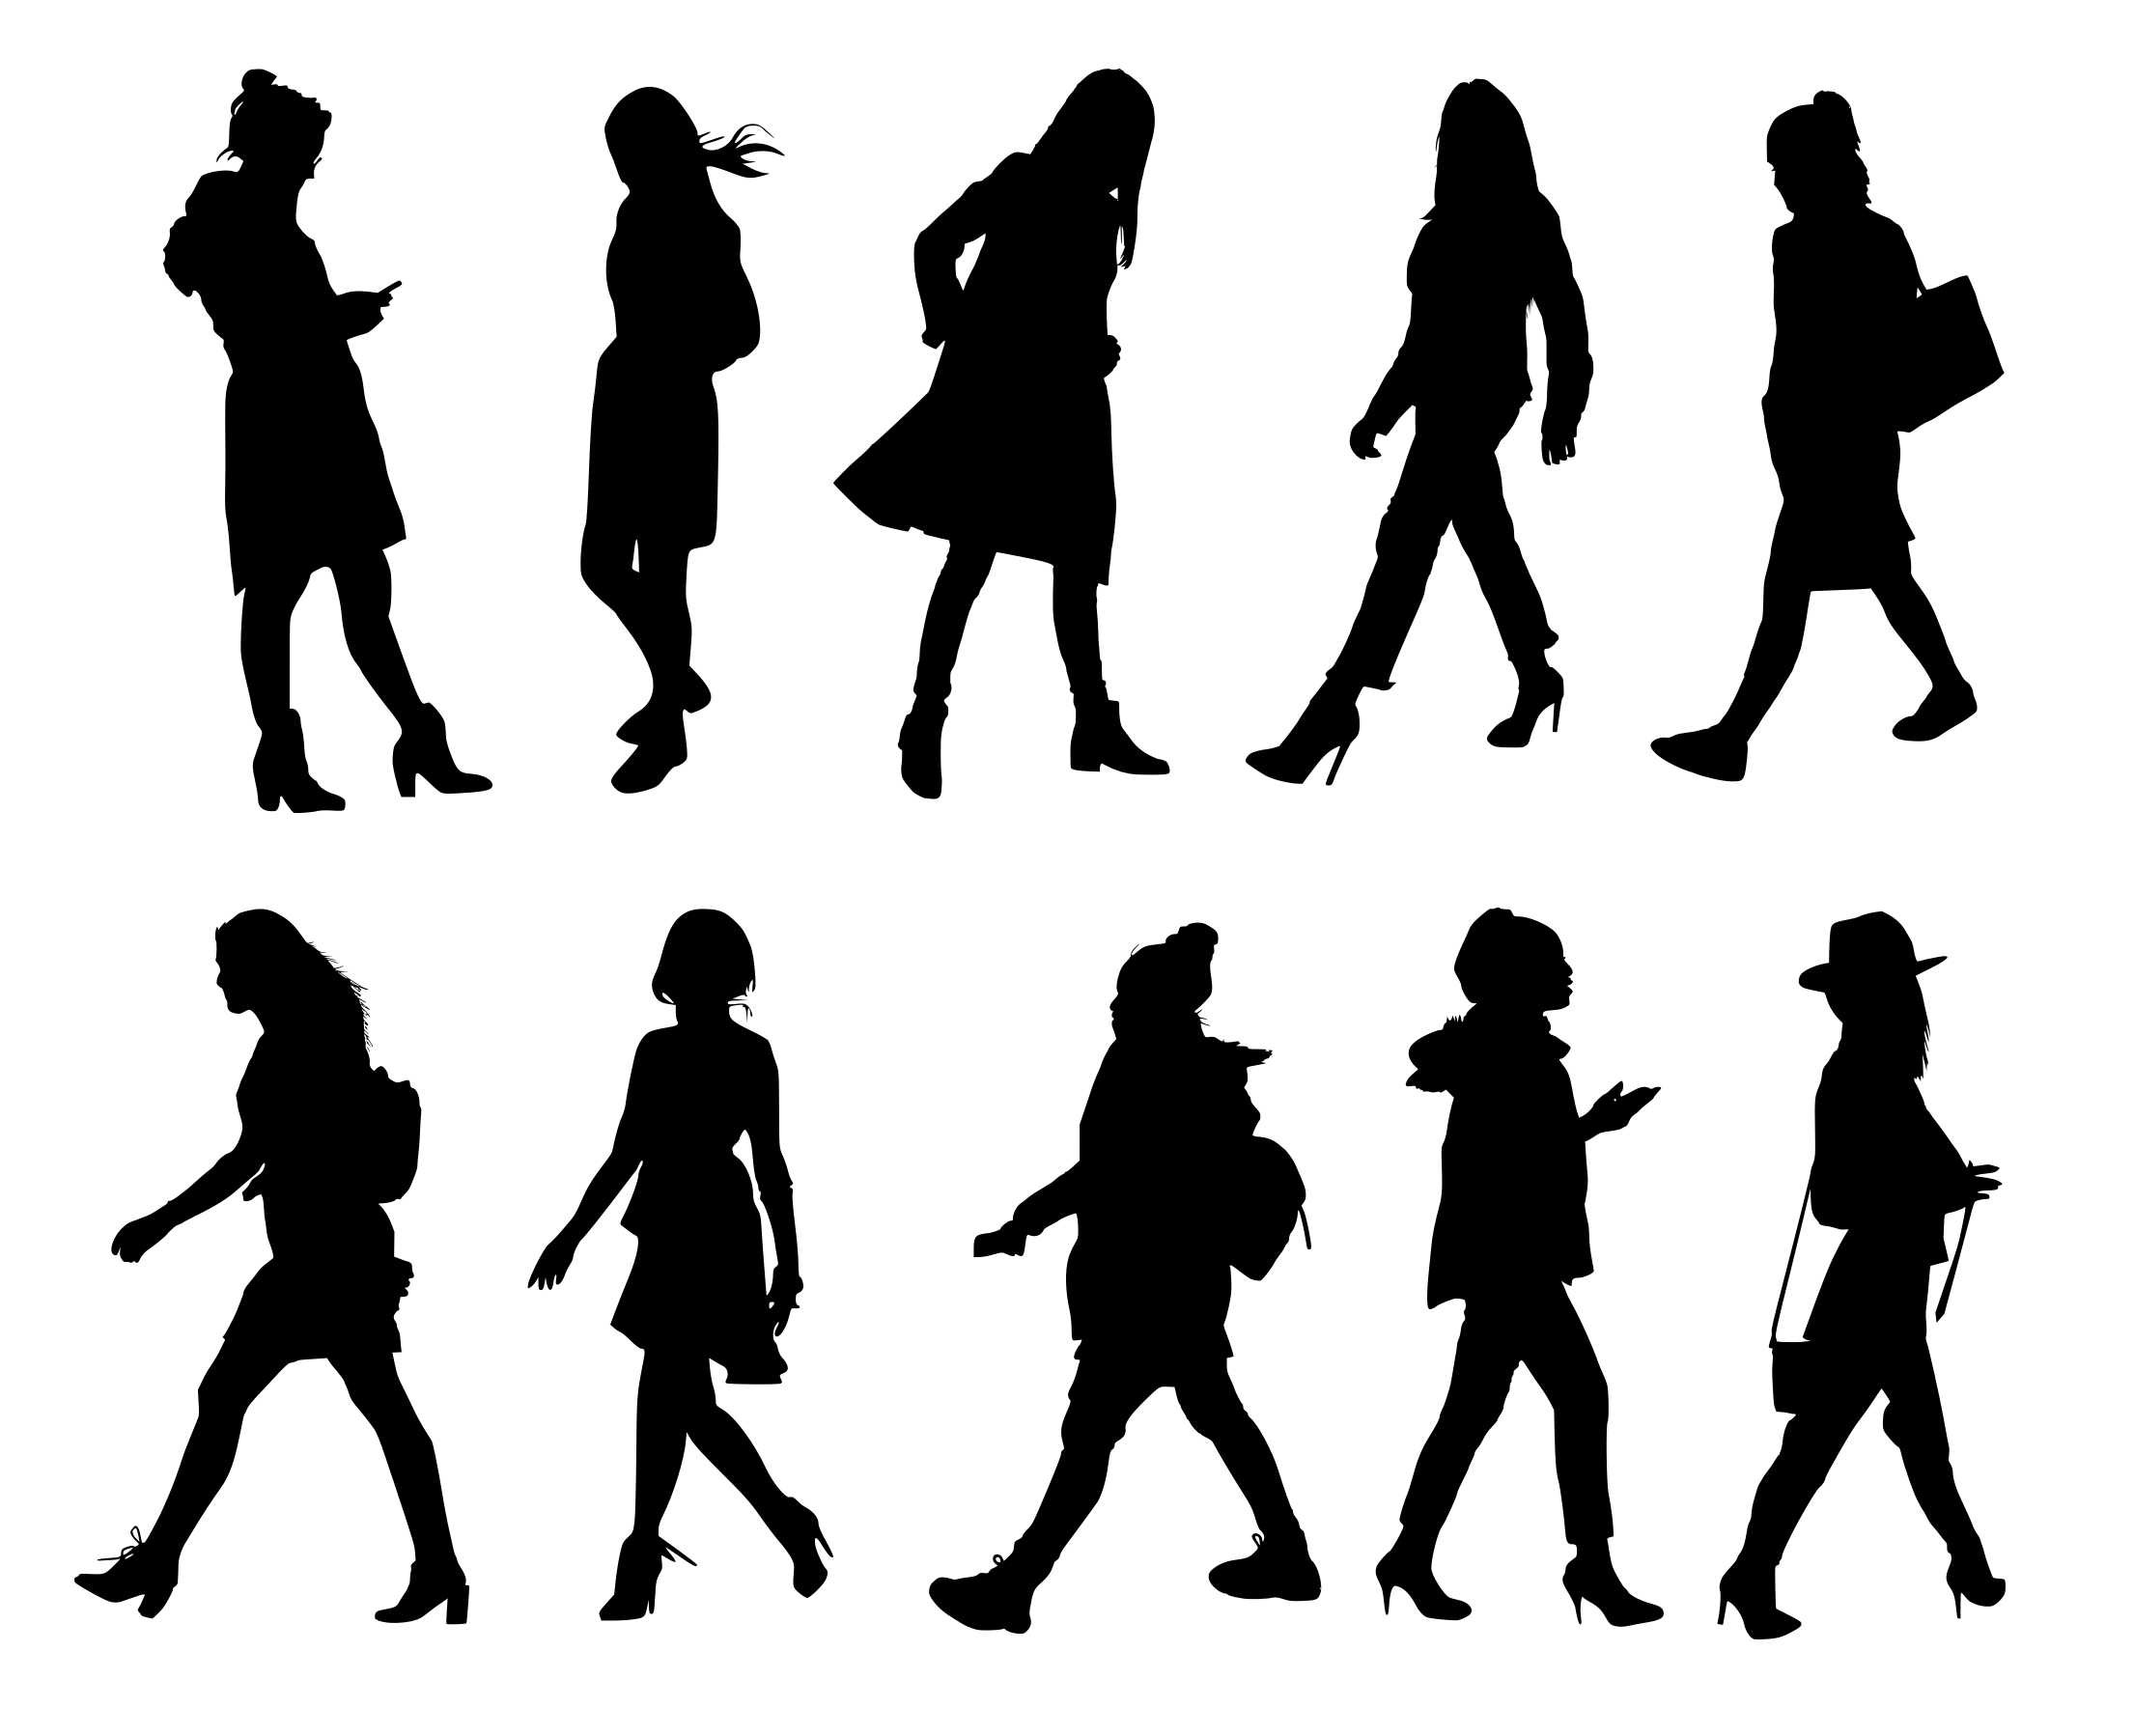 10-woman-walking-silhouette-cover.jpg